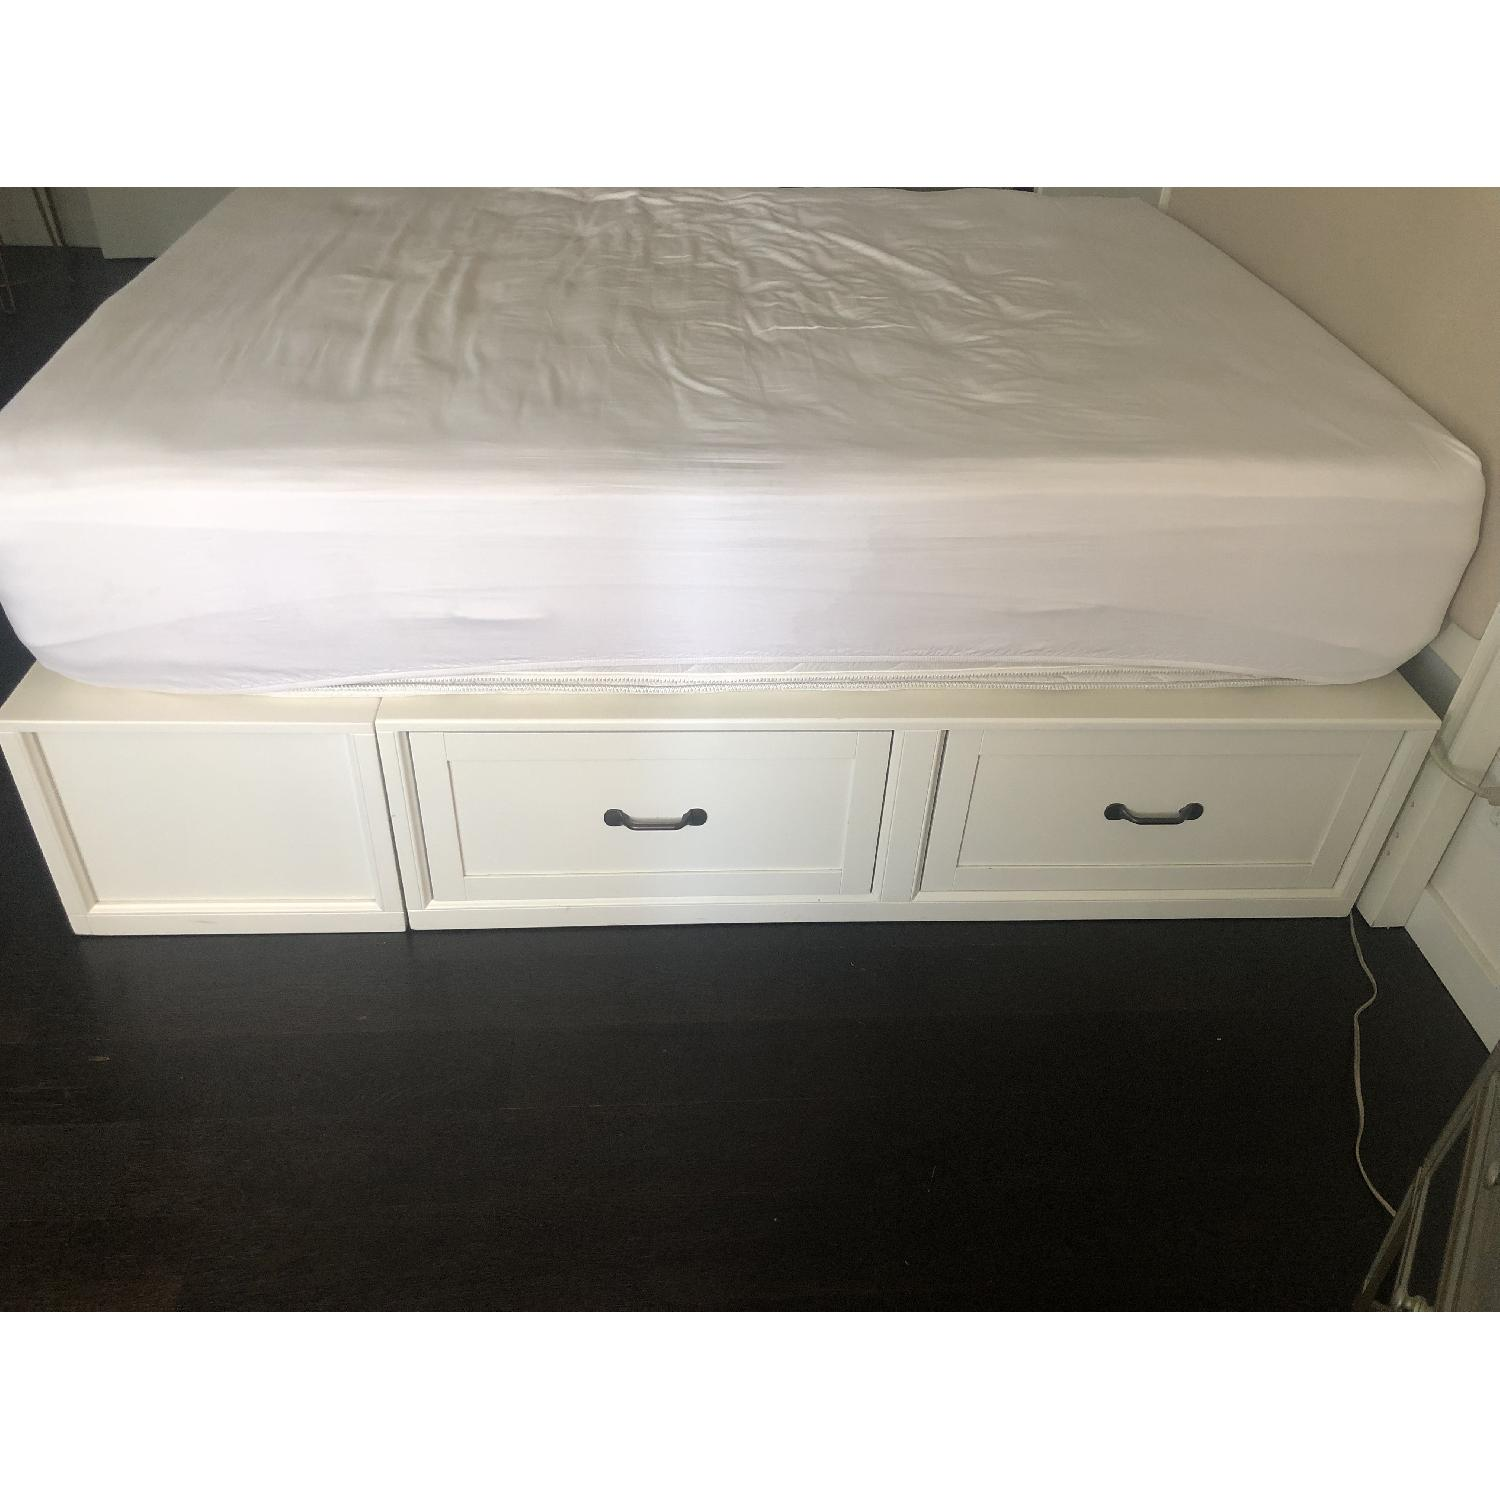 Pottery Barn White Storage Bed w/ Headboard-2